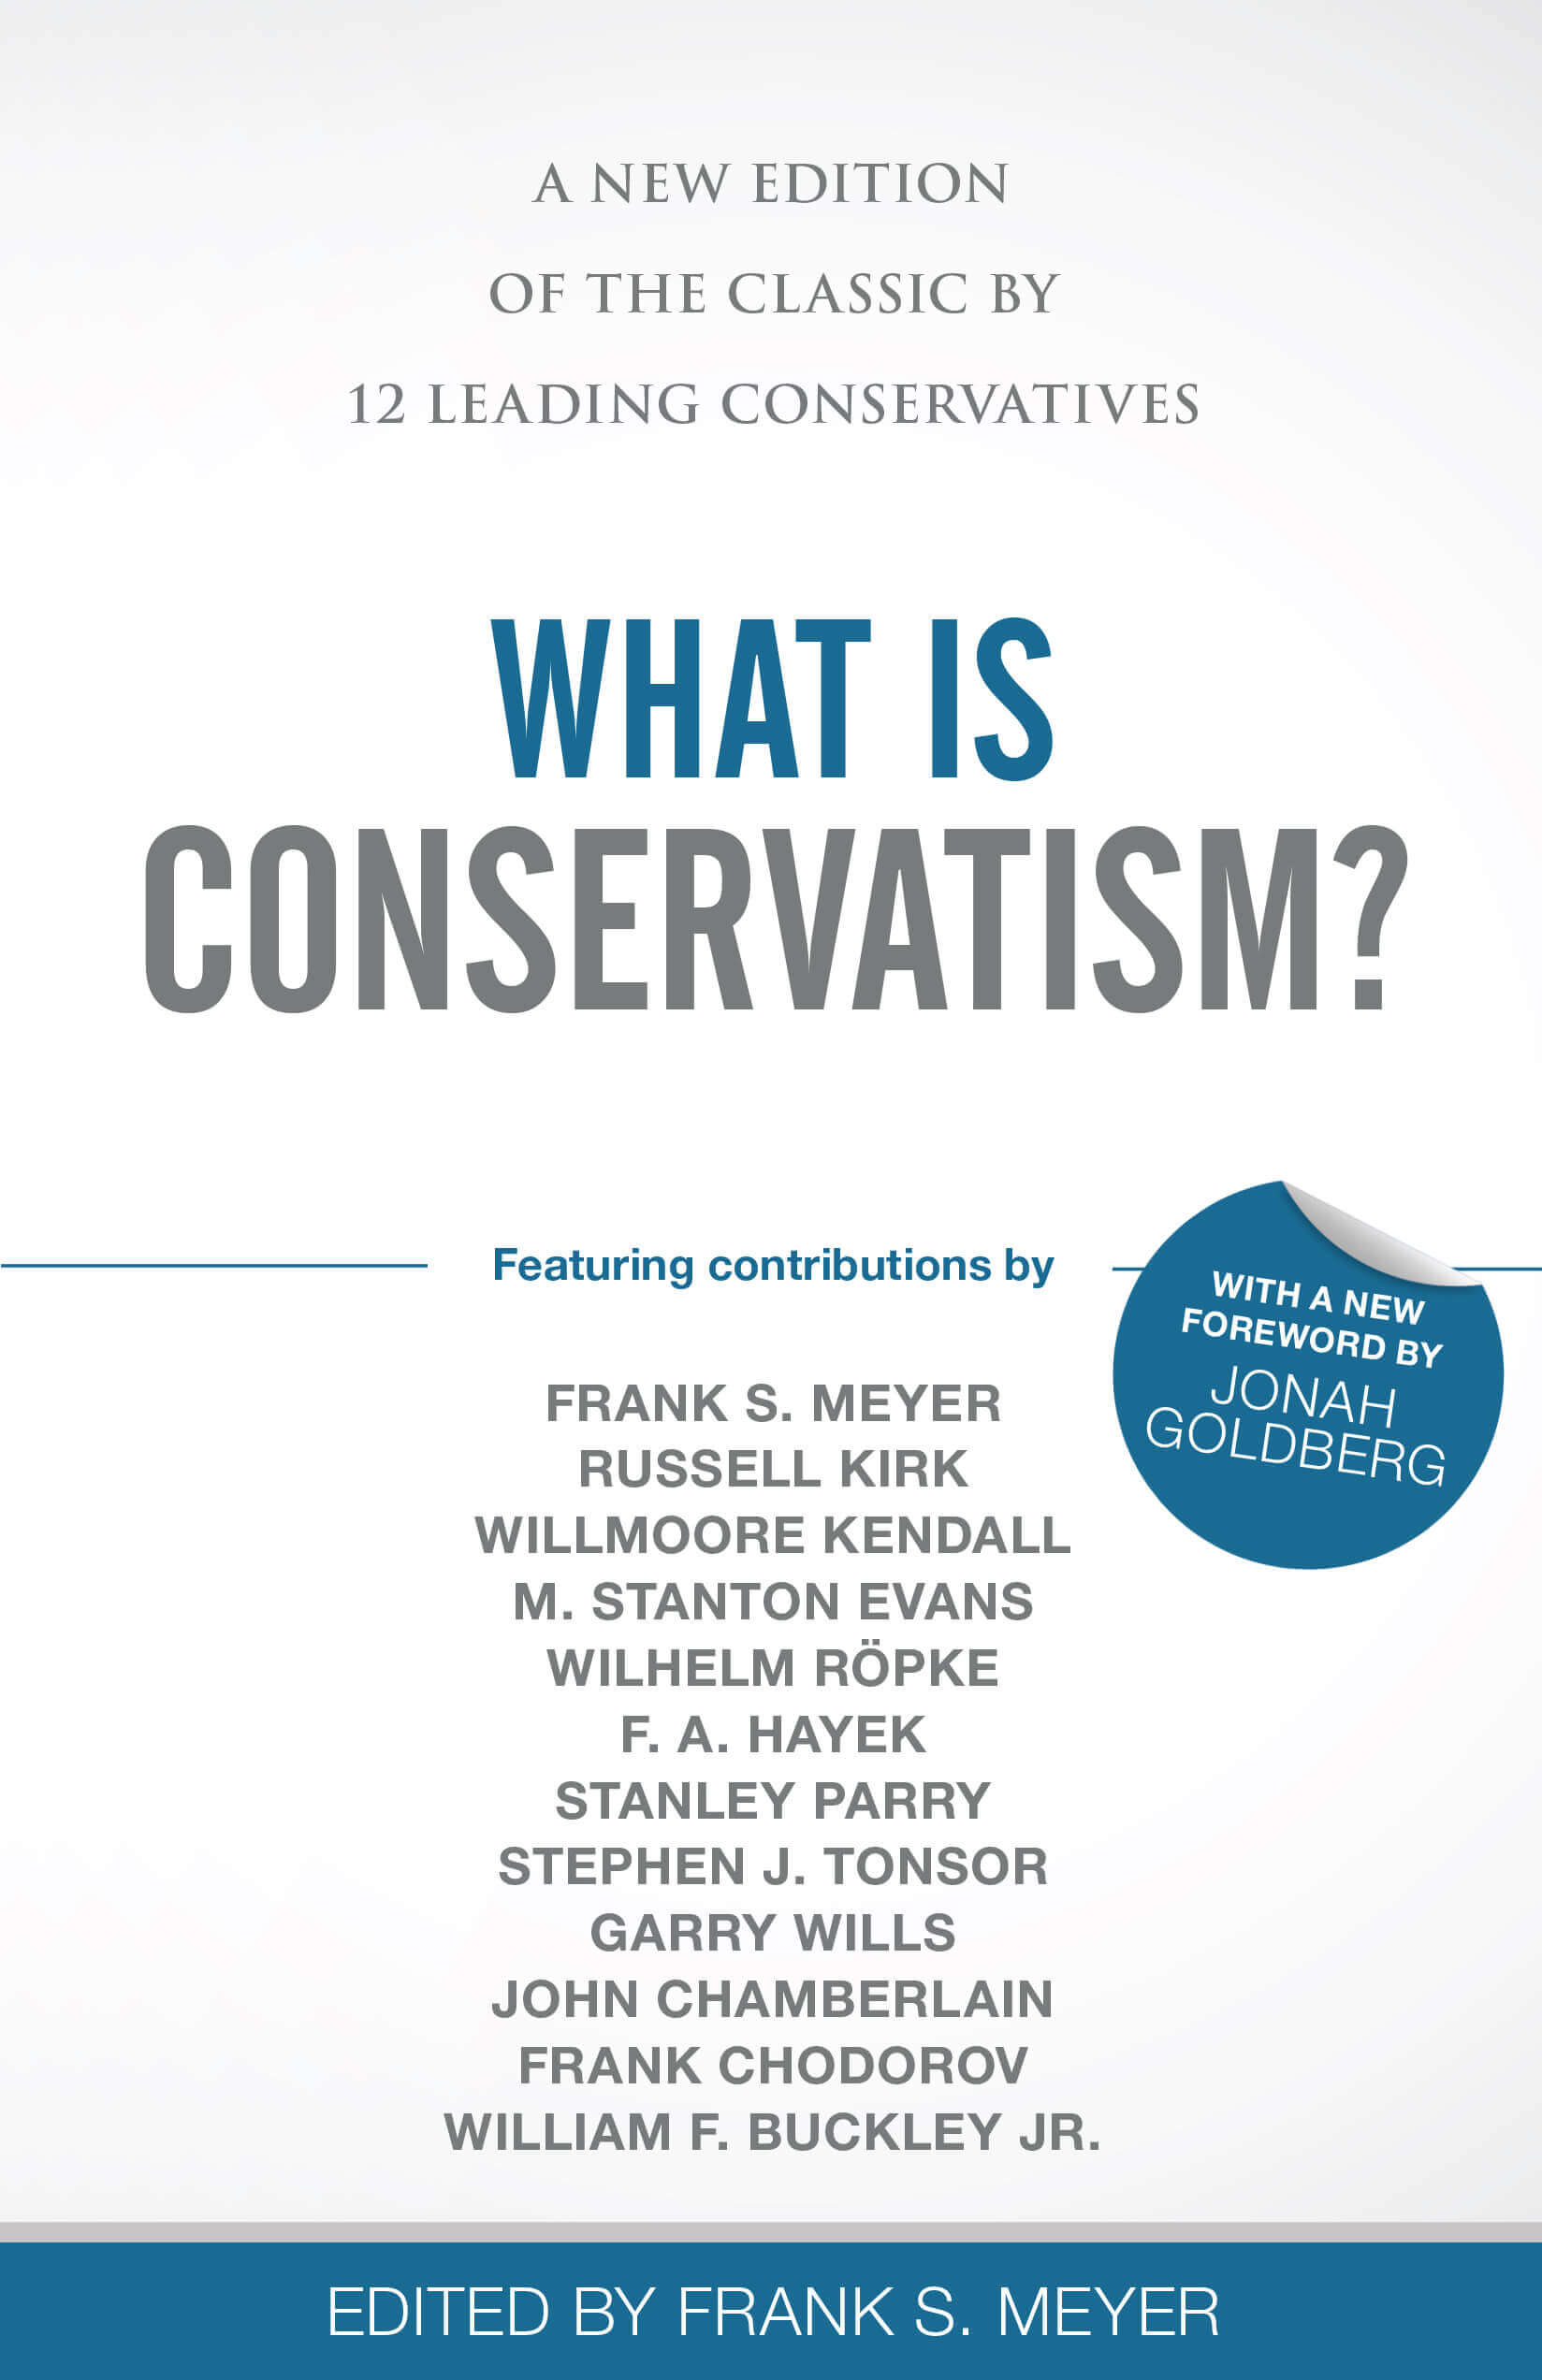 Buy What Is Conservatism? for 30% off